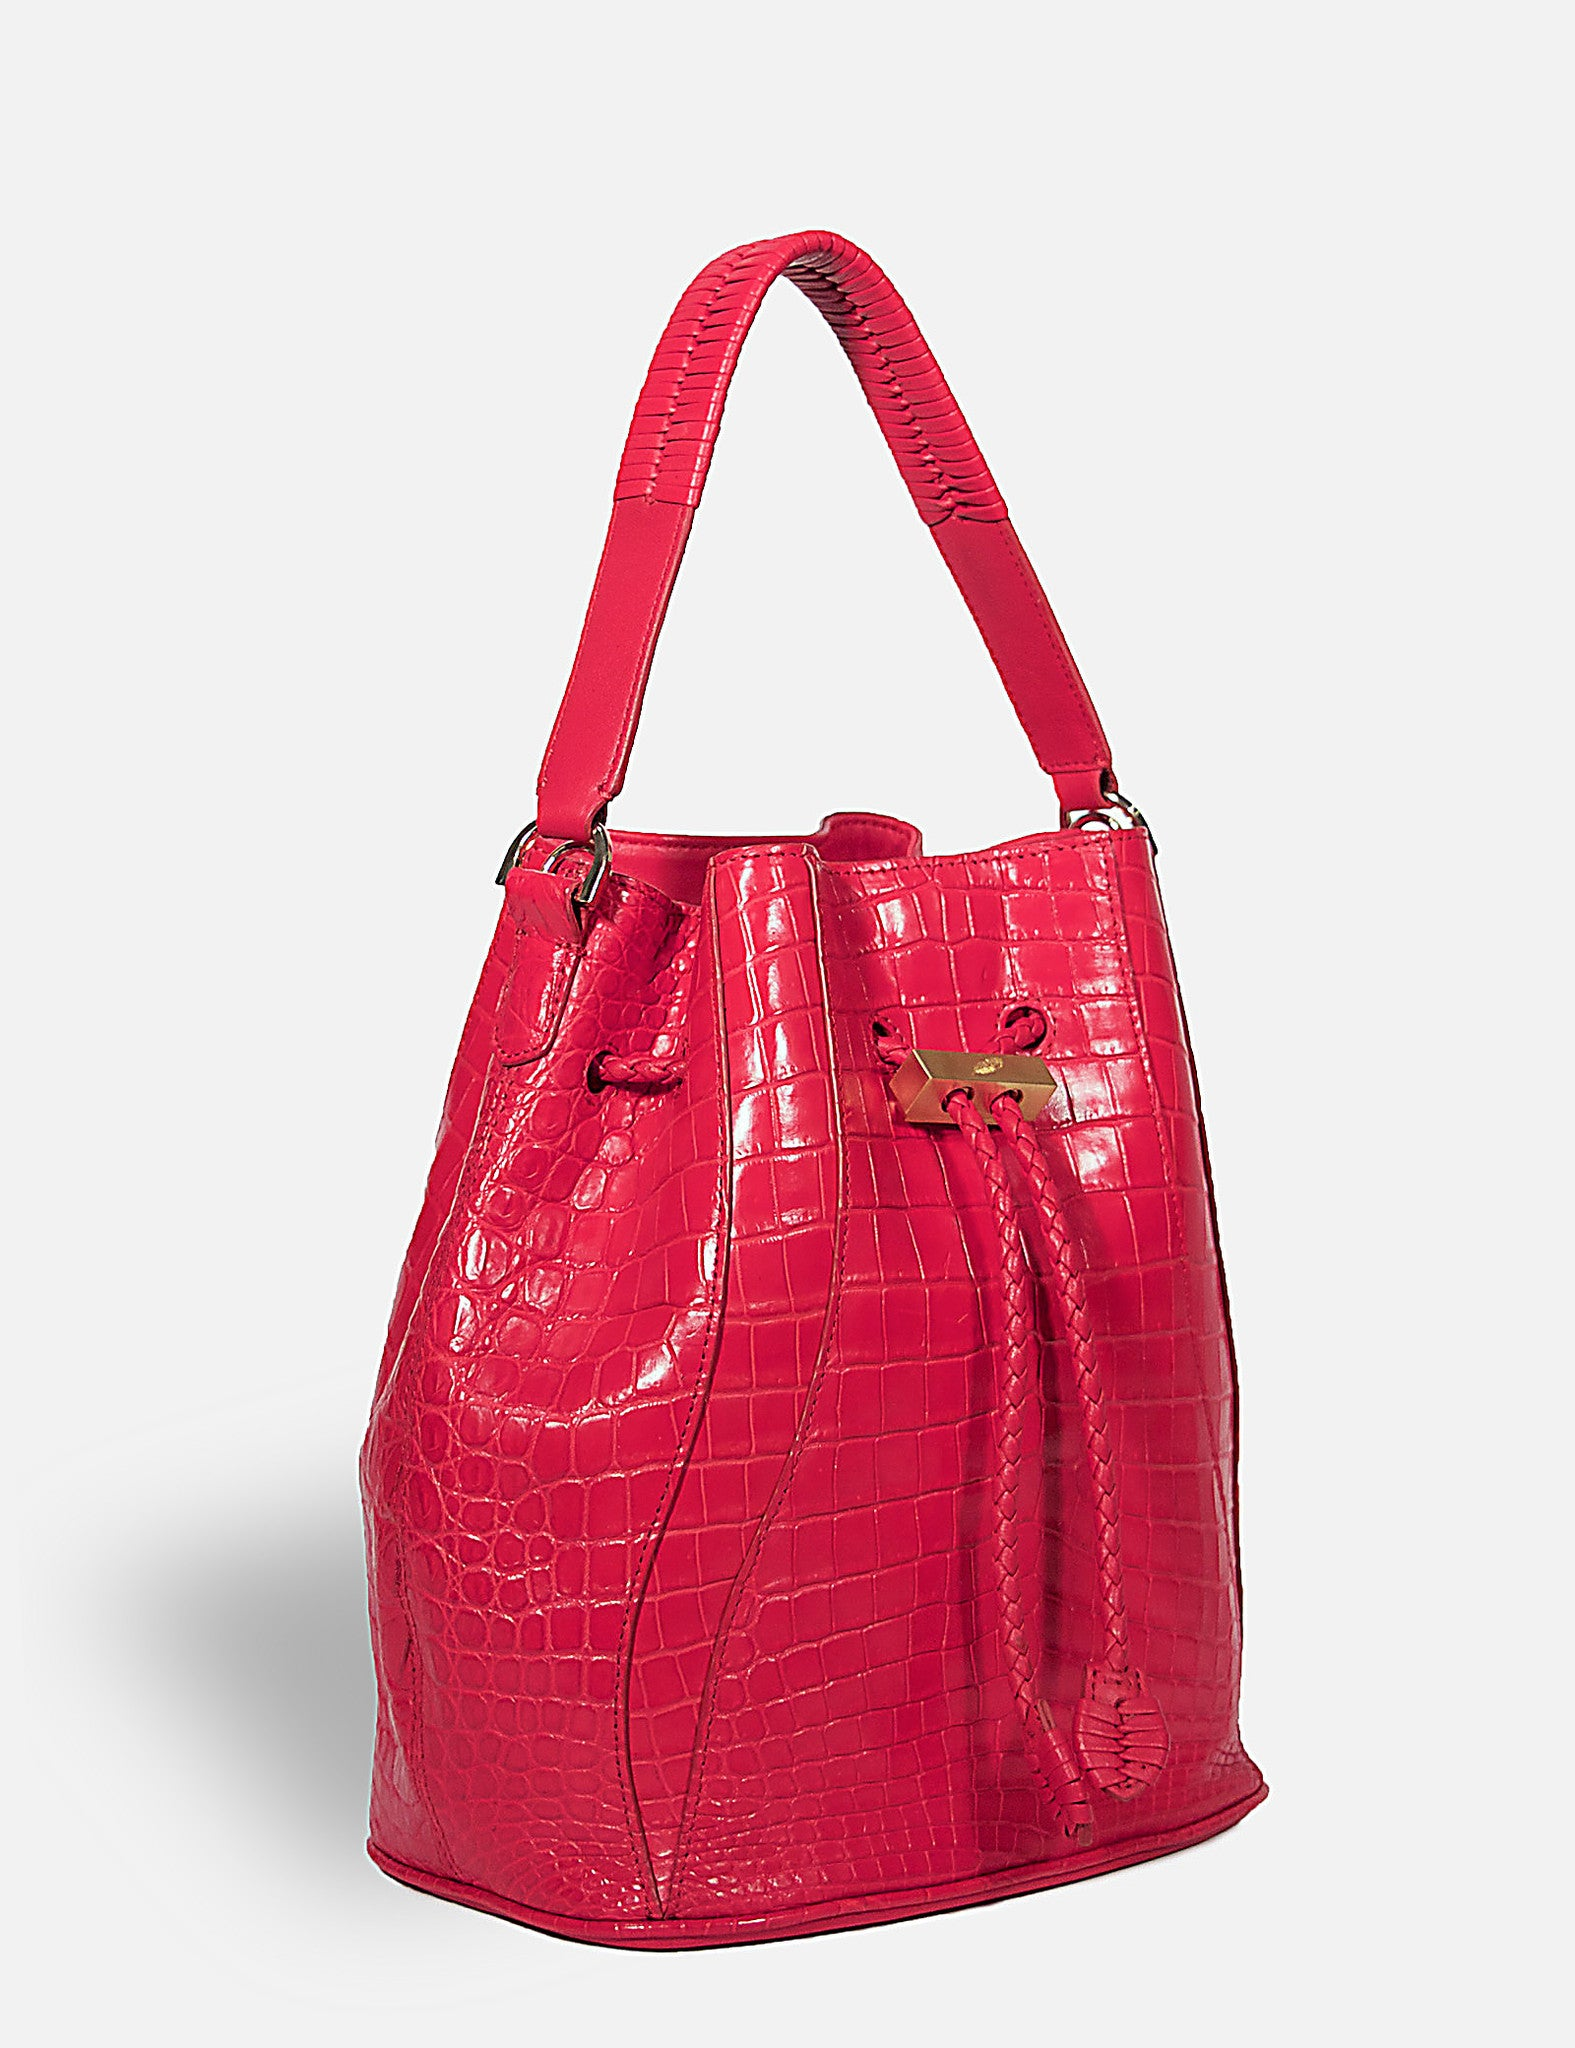 Khirma New York Unique Luxury Designer Exotic Crocodile Skin Edem Bucket Bag in Red. Removable cross body strap.